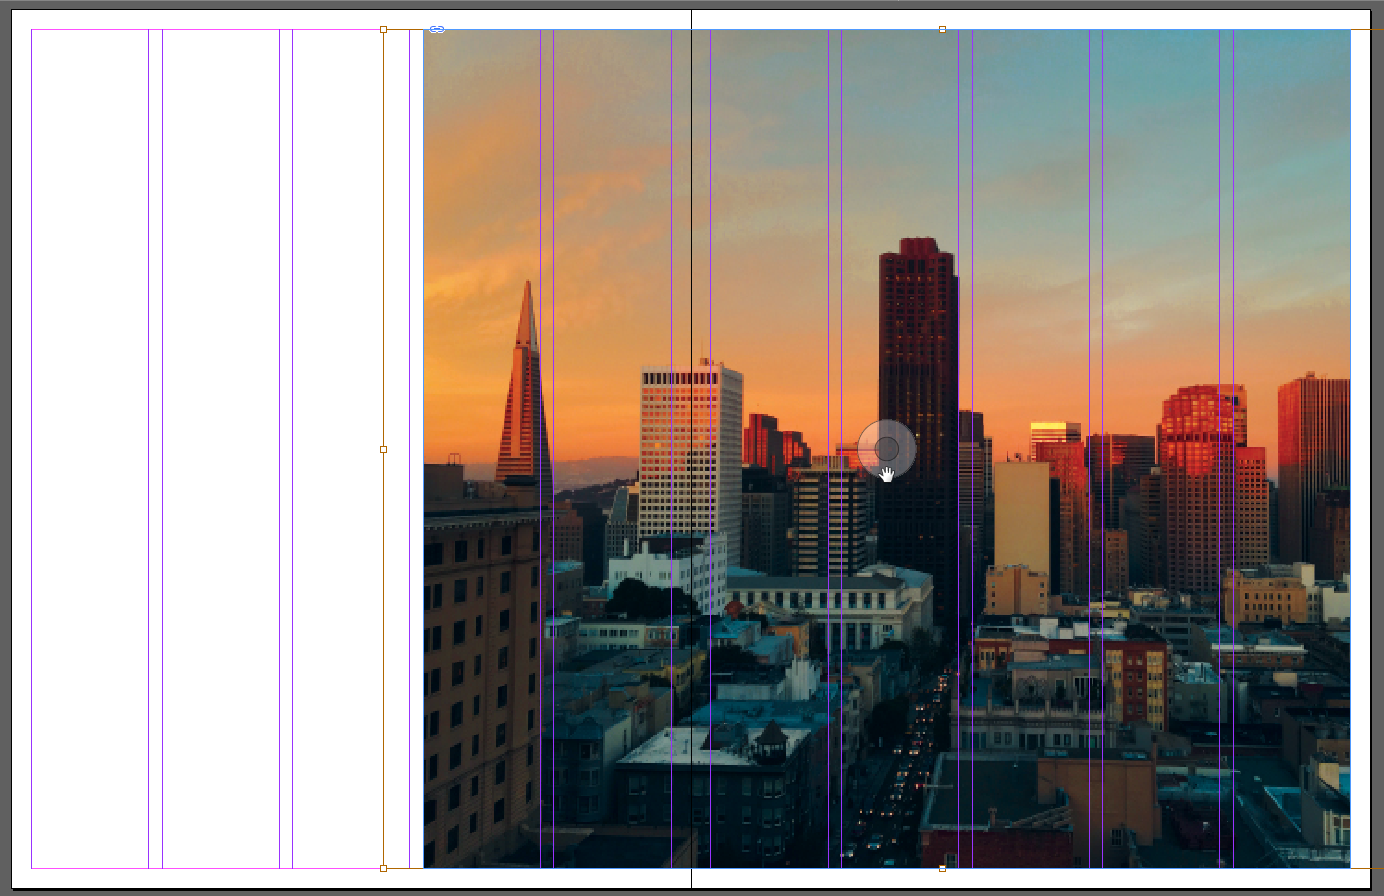 Screen capture showing photo after scaling and position adjustment within its image frame. The image fills the frame and the tallest building in the photo is positioned at about the center of the image frame.